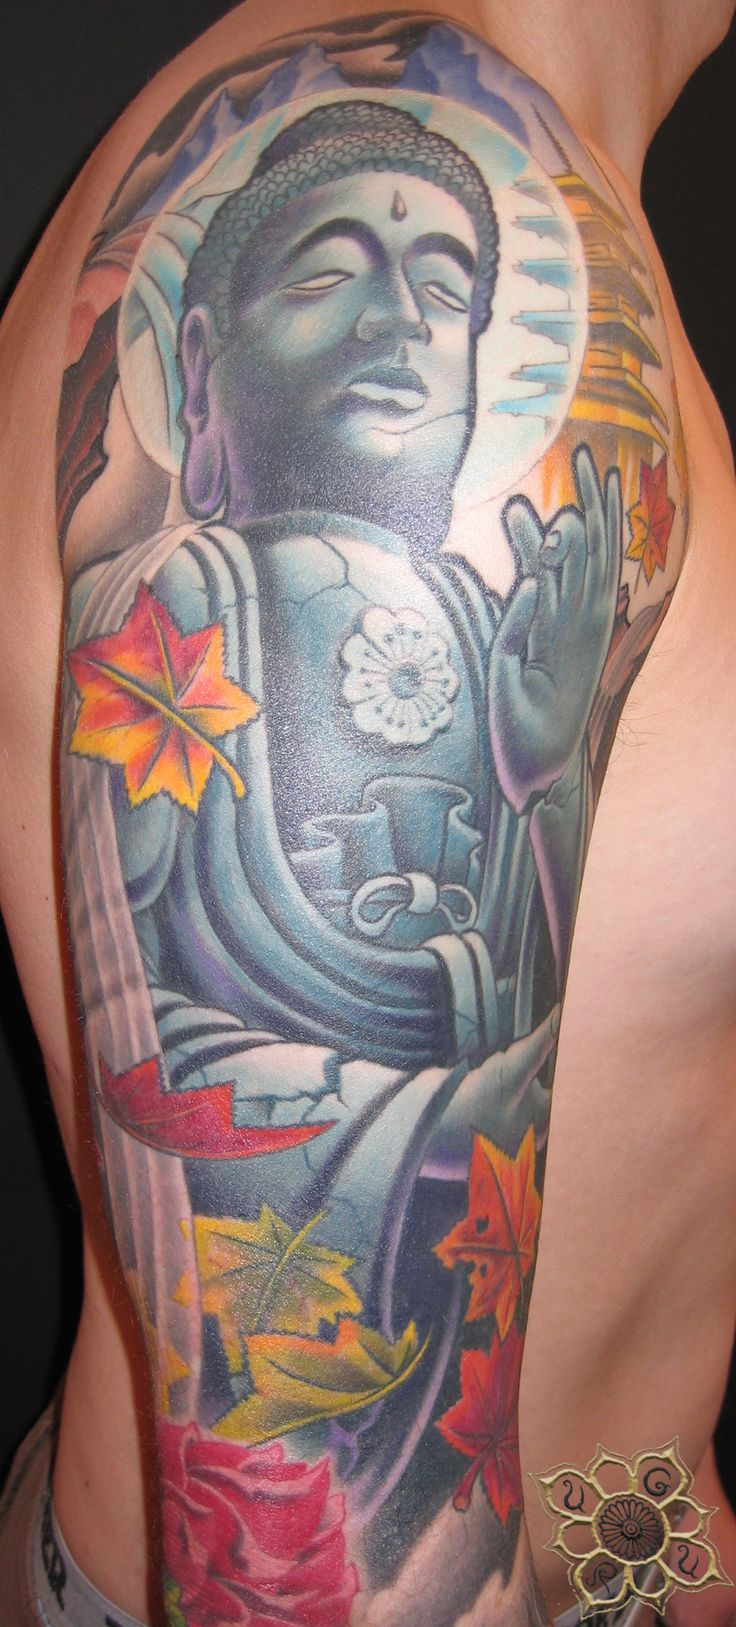 44 best images about aaron della vedova on pinterest cas for Tattoo expo san diego